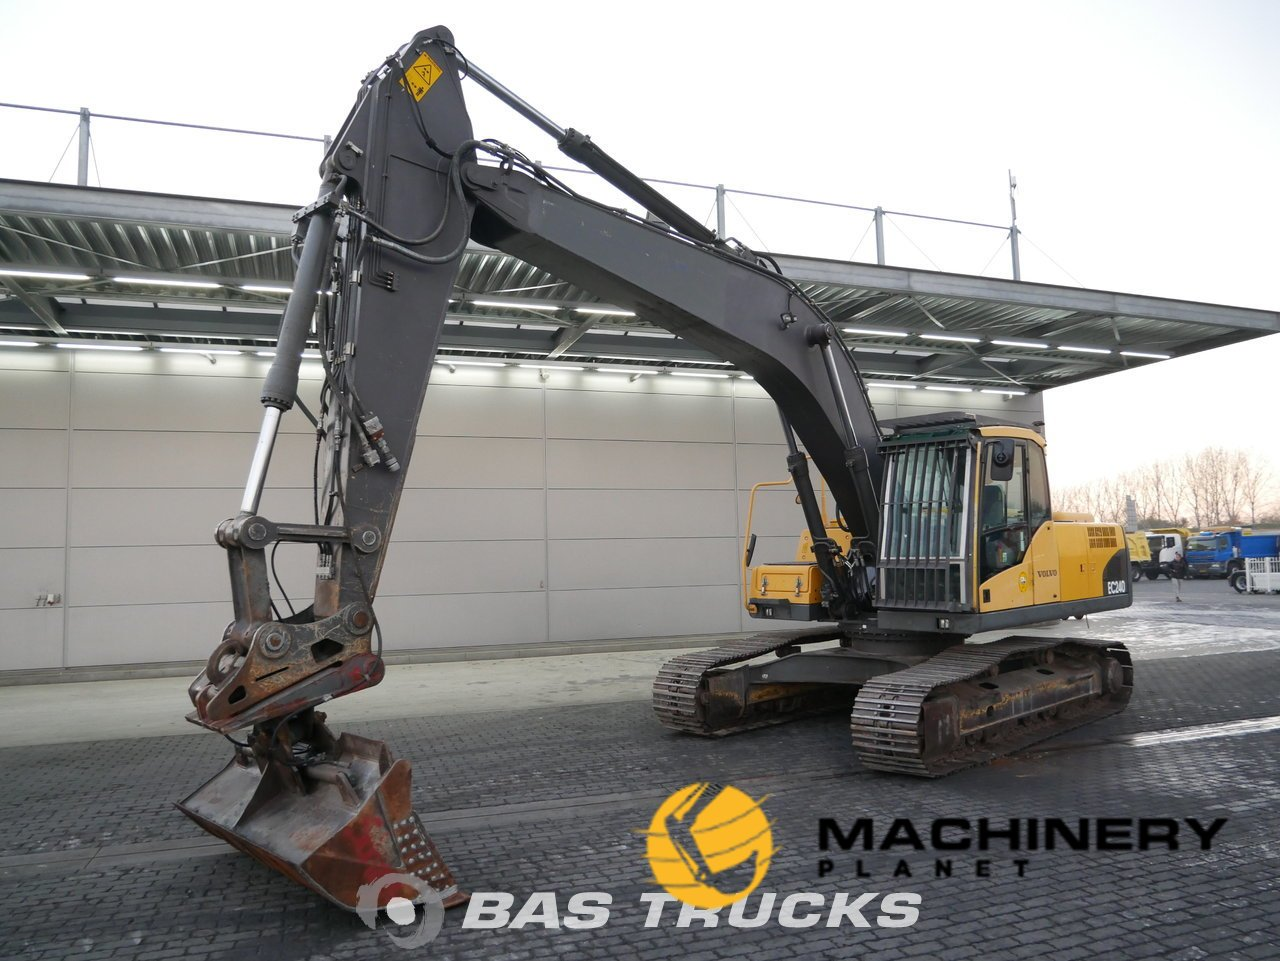 Used-Construction-equipment-Volvo-EC240C-NL-Track-2009_143287_1-1554113370385_5ca1e35a5e064-1.jpg